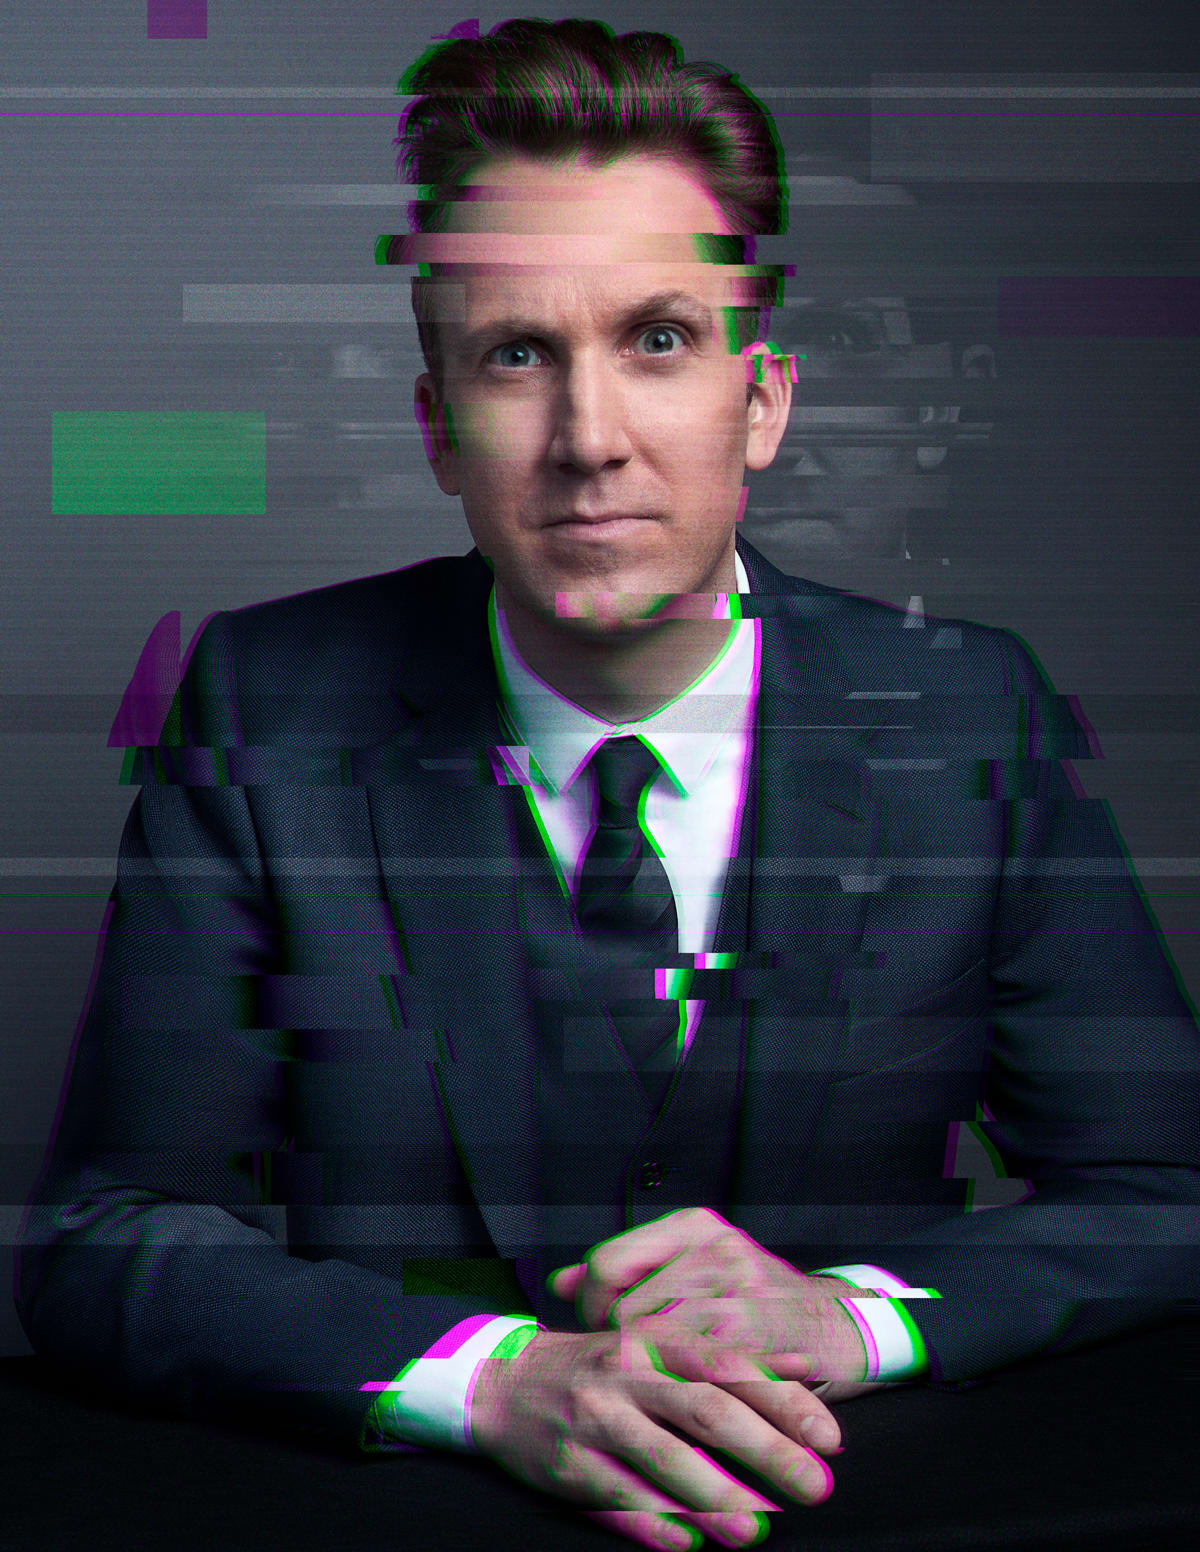 Comedy Central's The Opposition w/ Jordan Klepper Glitch Portraits